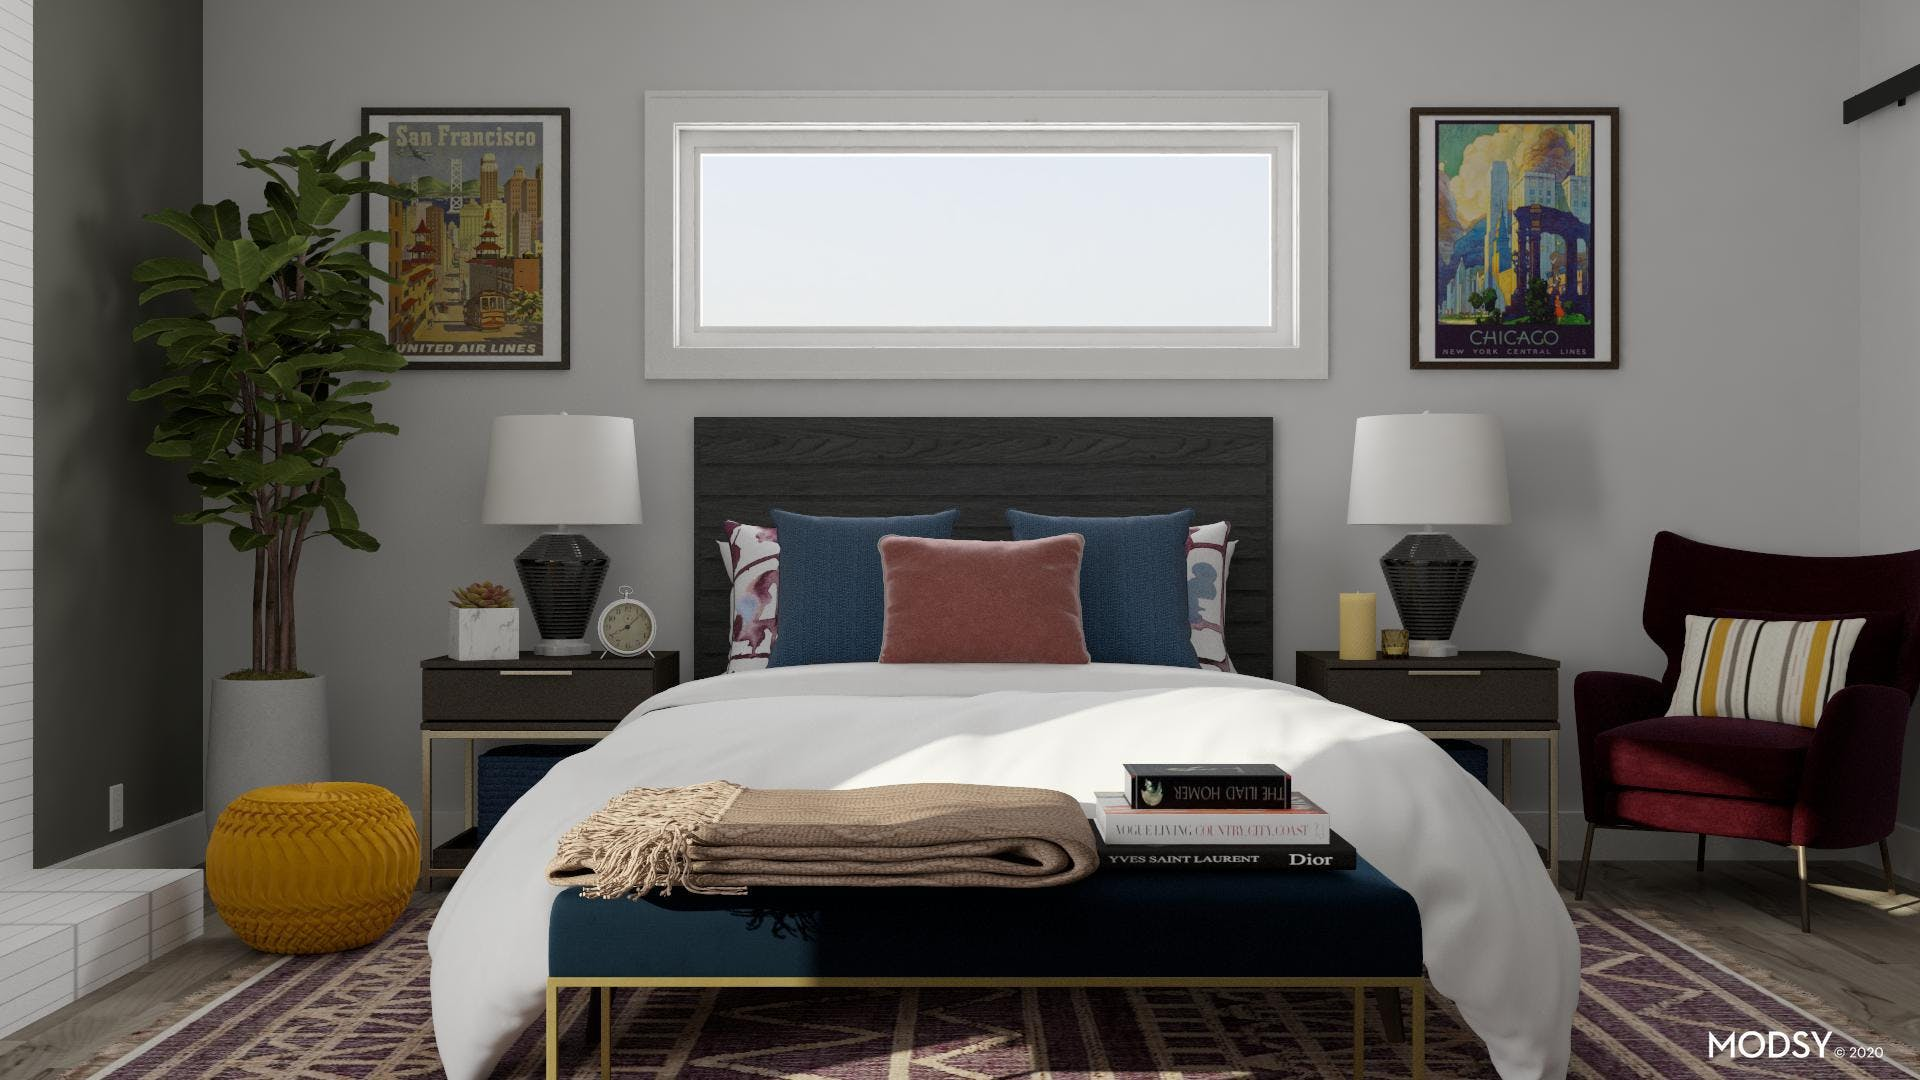 Contemporary Style With A Touch Of Jewel Tone Colors